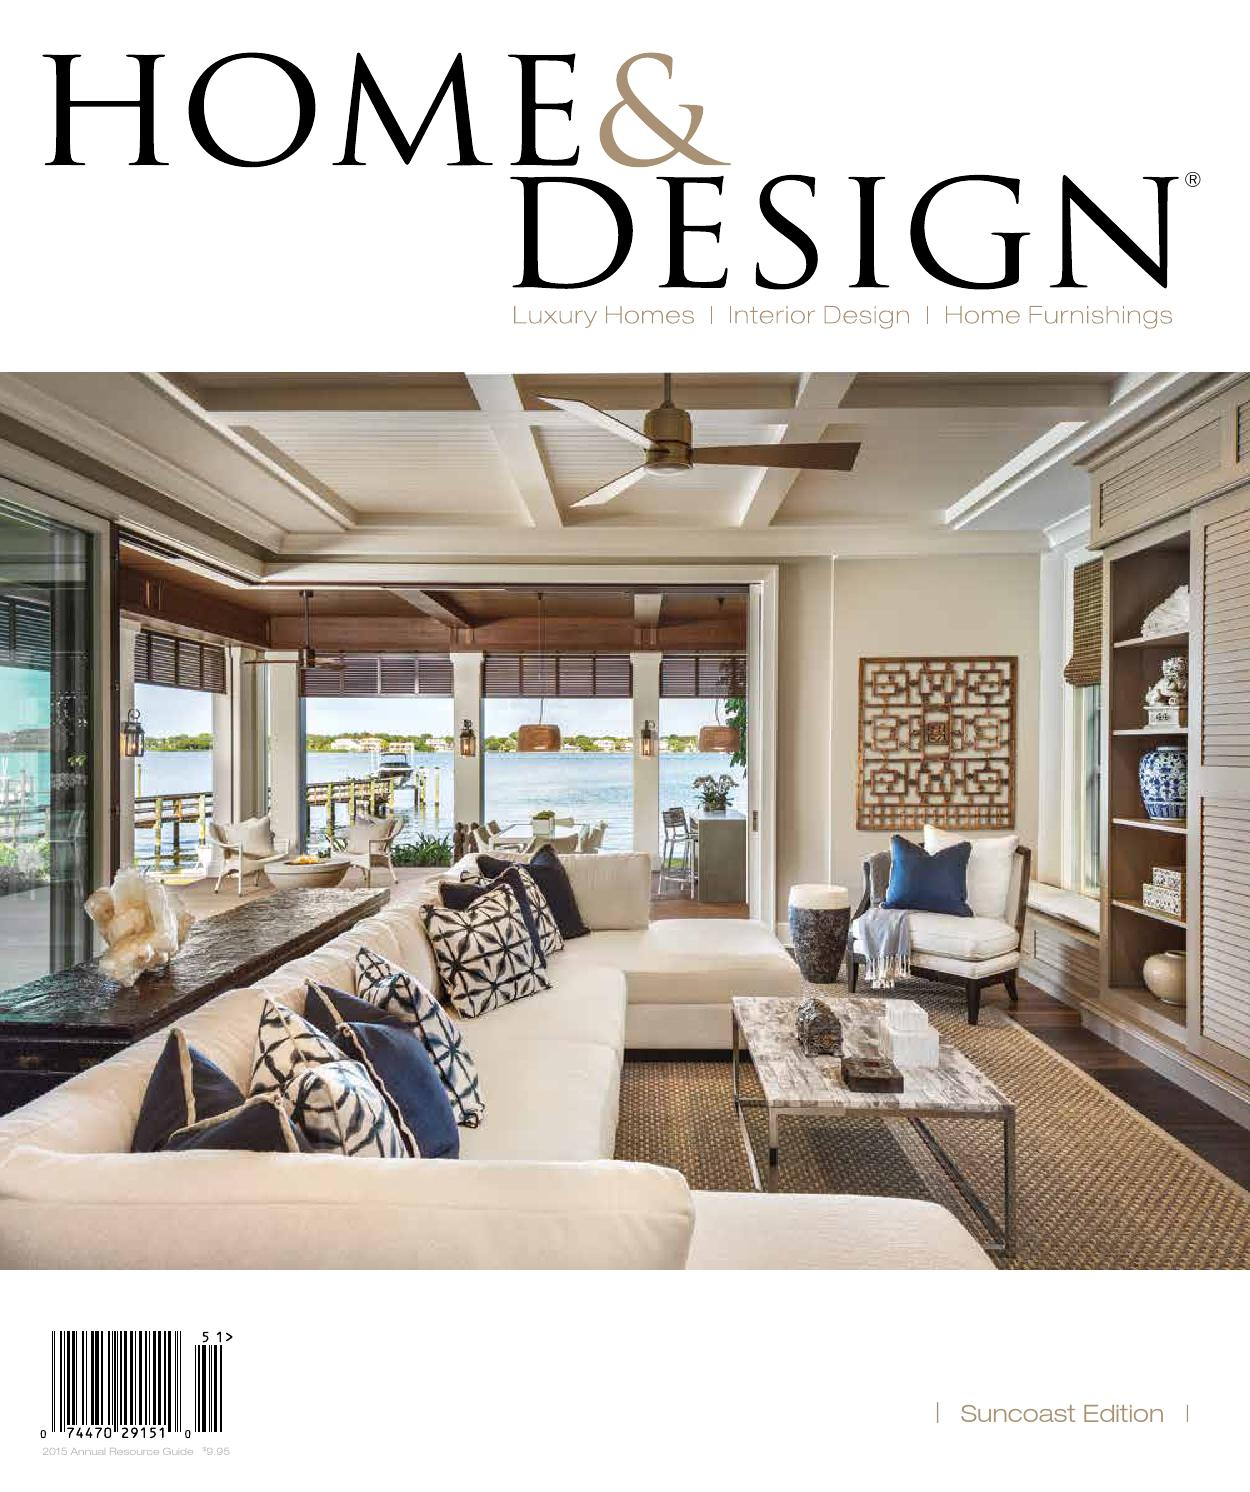 Home design magazine annual resource guide 2015 suncoast florida edition by anthony spano Home design furniture in antioch